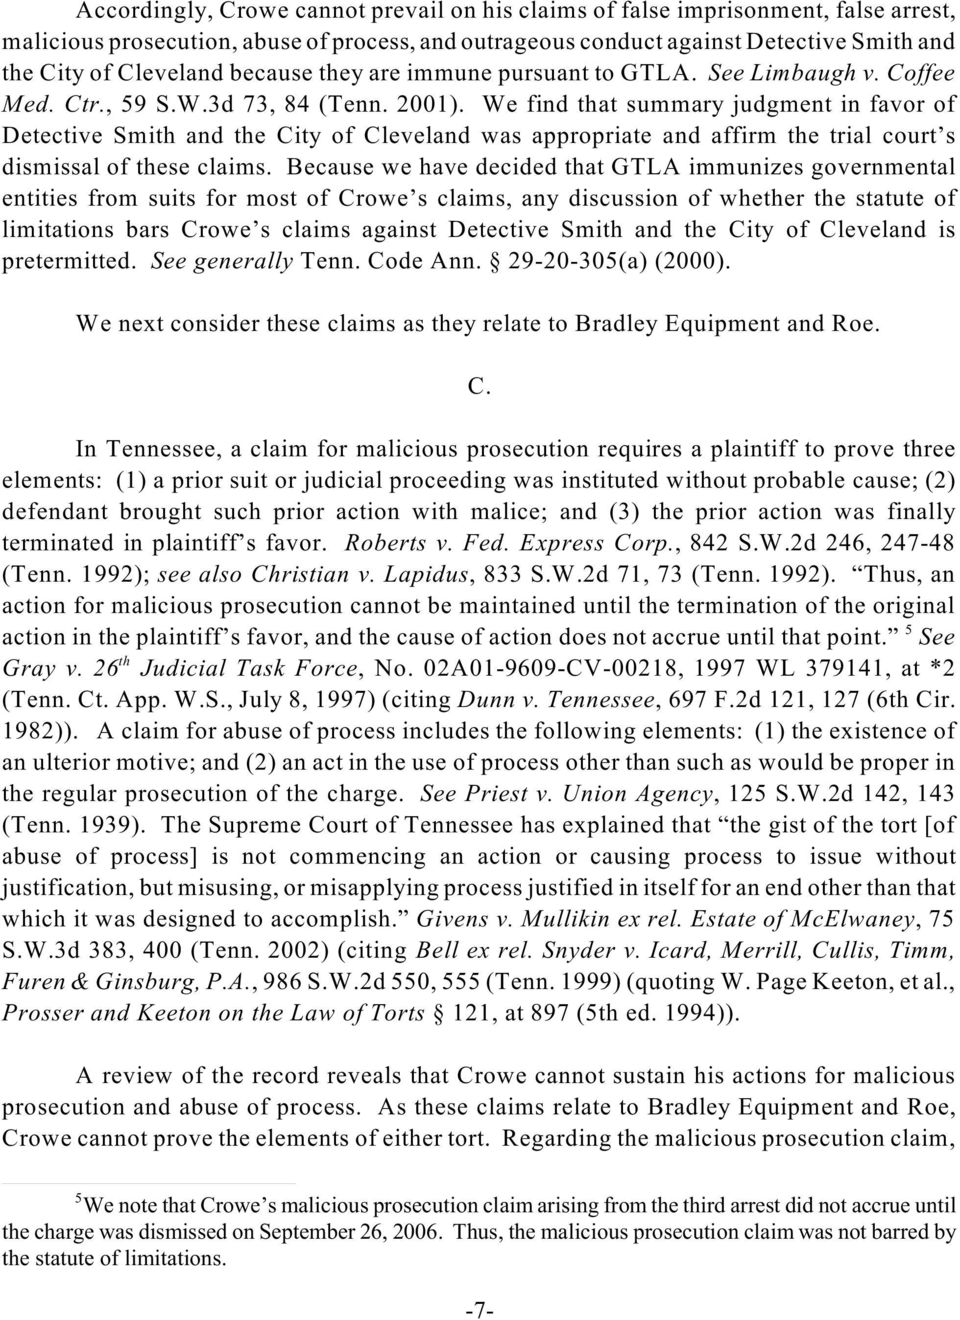 We find that summary judgment in favor of Detective Smith and the City of Cleveland was appropriate and affirm the trial court s dismissal of these claims.